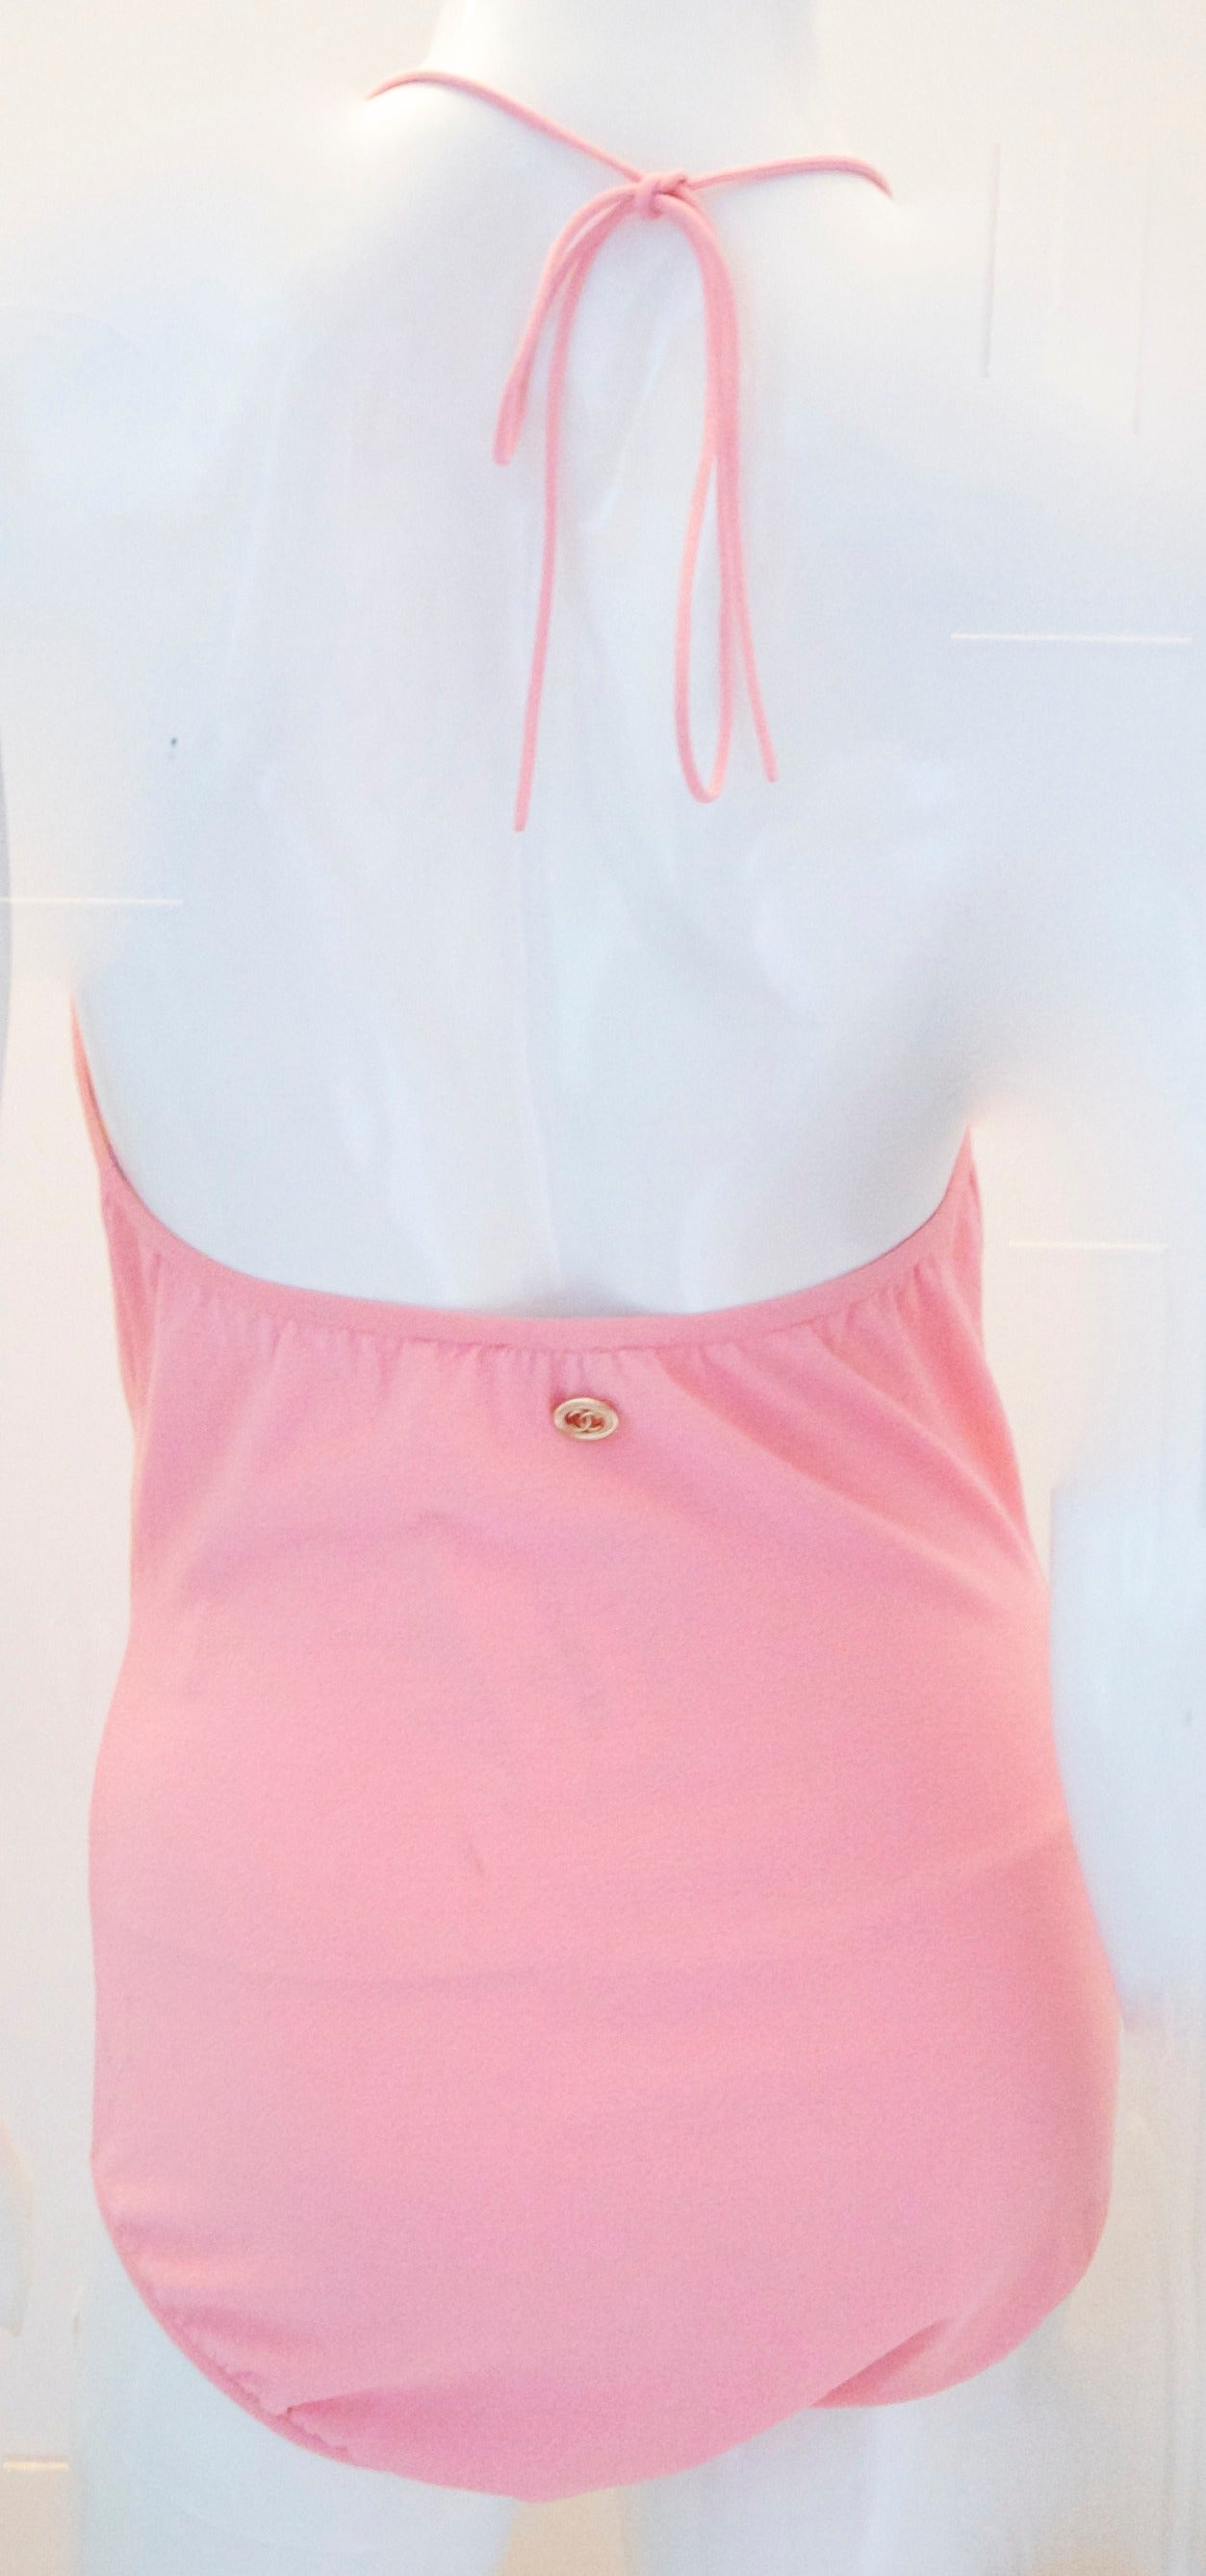 Chanel Pink Body Suit - Size 40 2